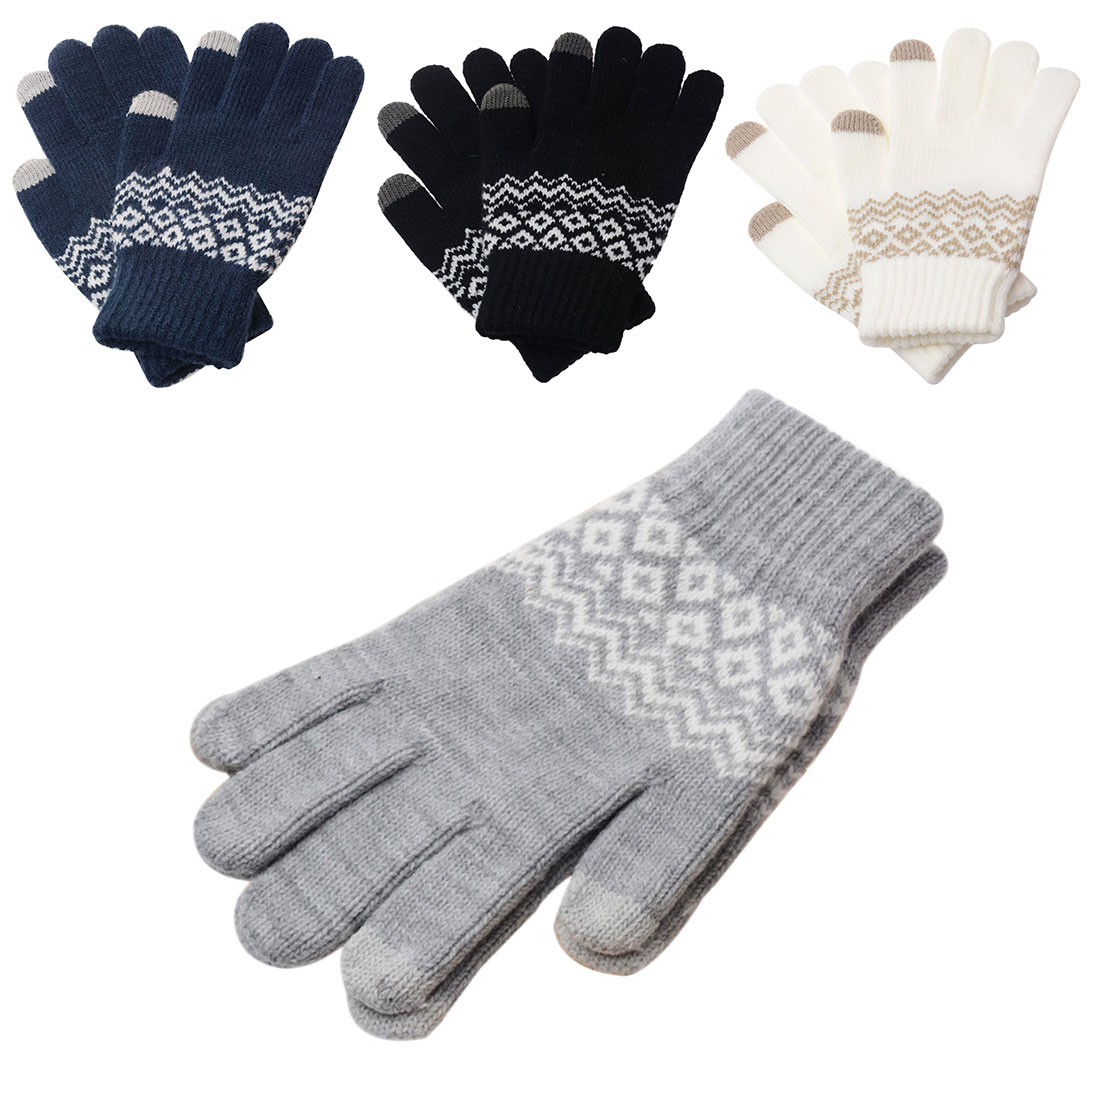 New Stretch Snow Knitted Gloves For Women Men Square Mittens Use Smartphone Screen Gloves Wool-Knit Warmer Chirstmas Gift